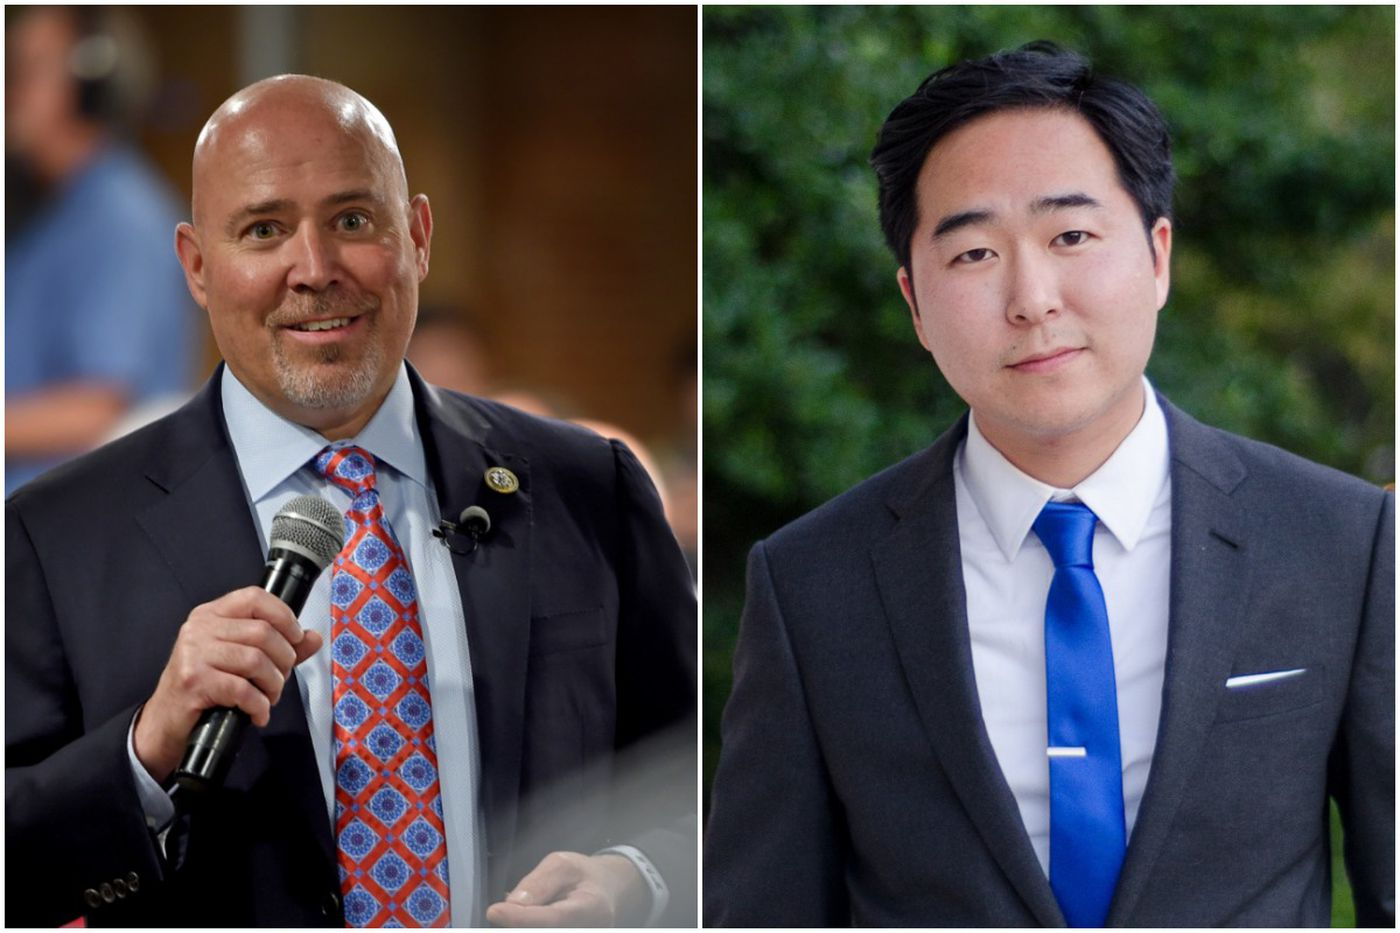 Poll: Tom MacArthur, Andy Kim neck-and-neck in key South Jersey U.S. House race